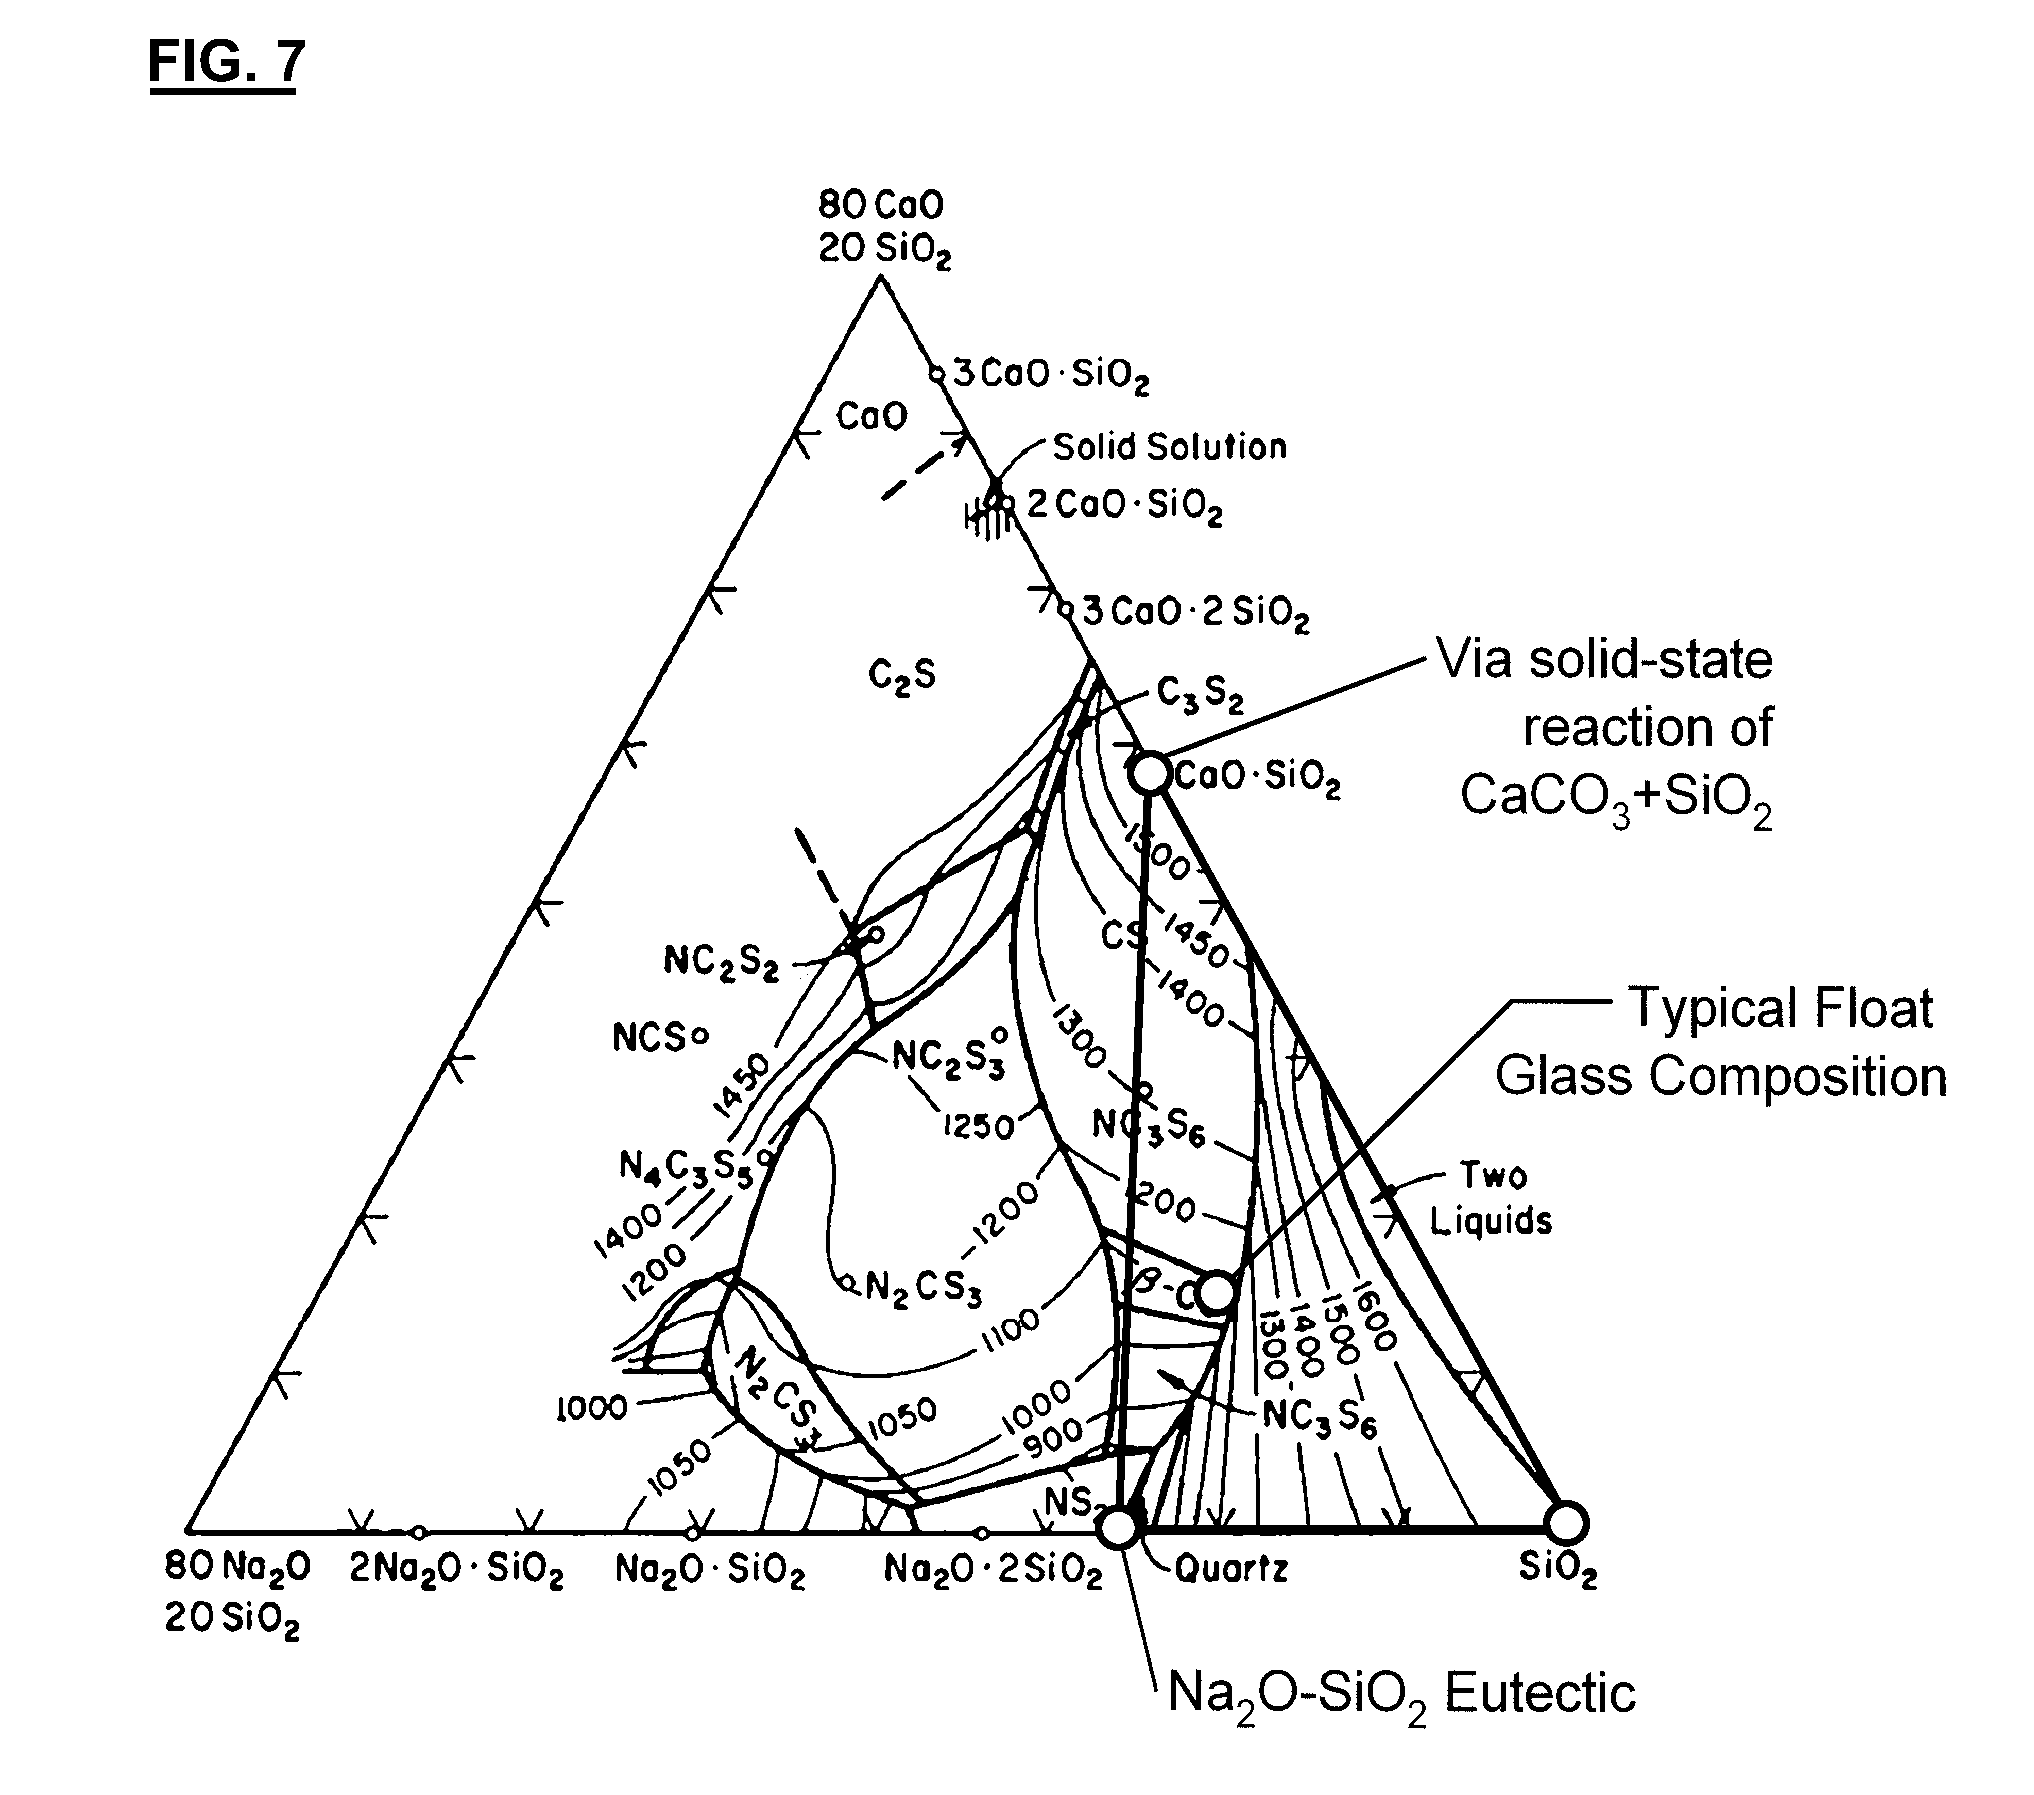 sio2 phase diagram fujitsu wiring cao al2o3 activeties in of